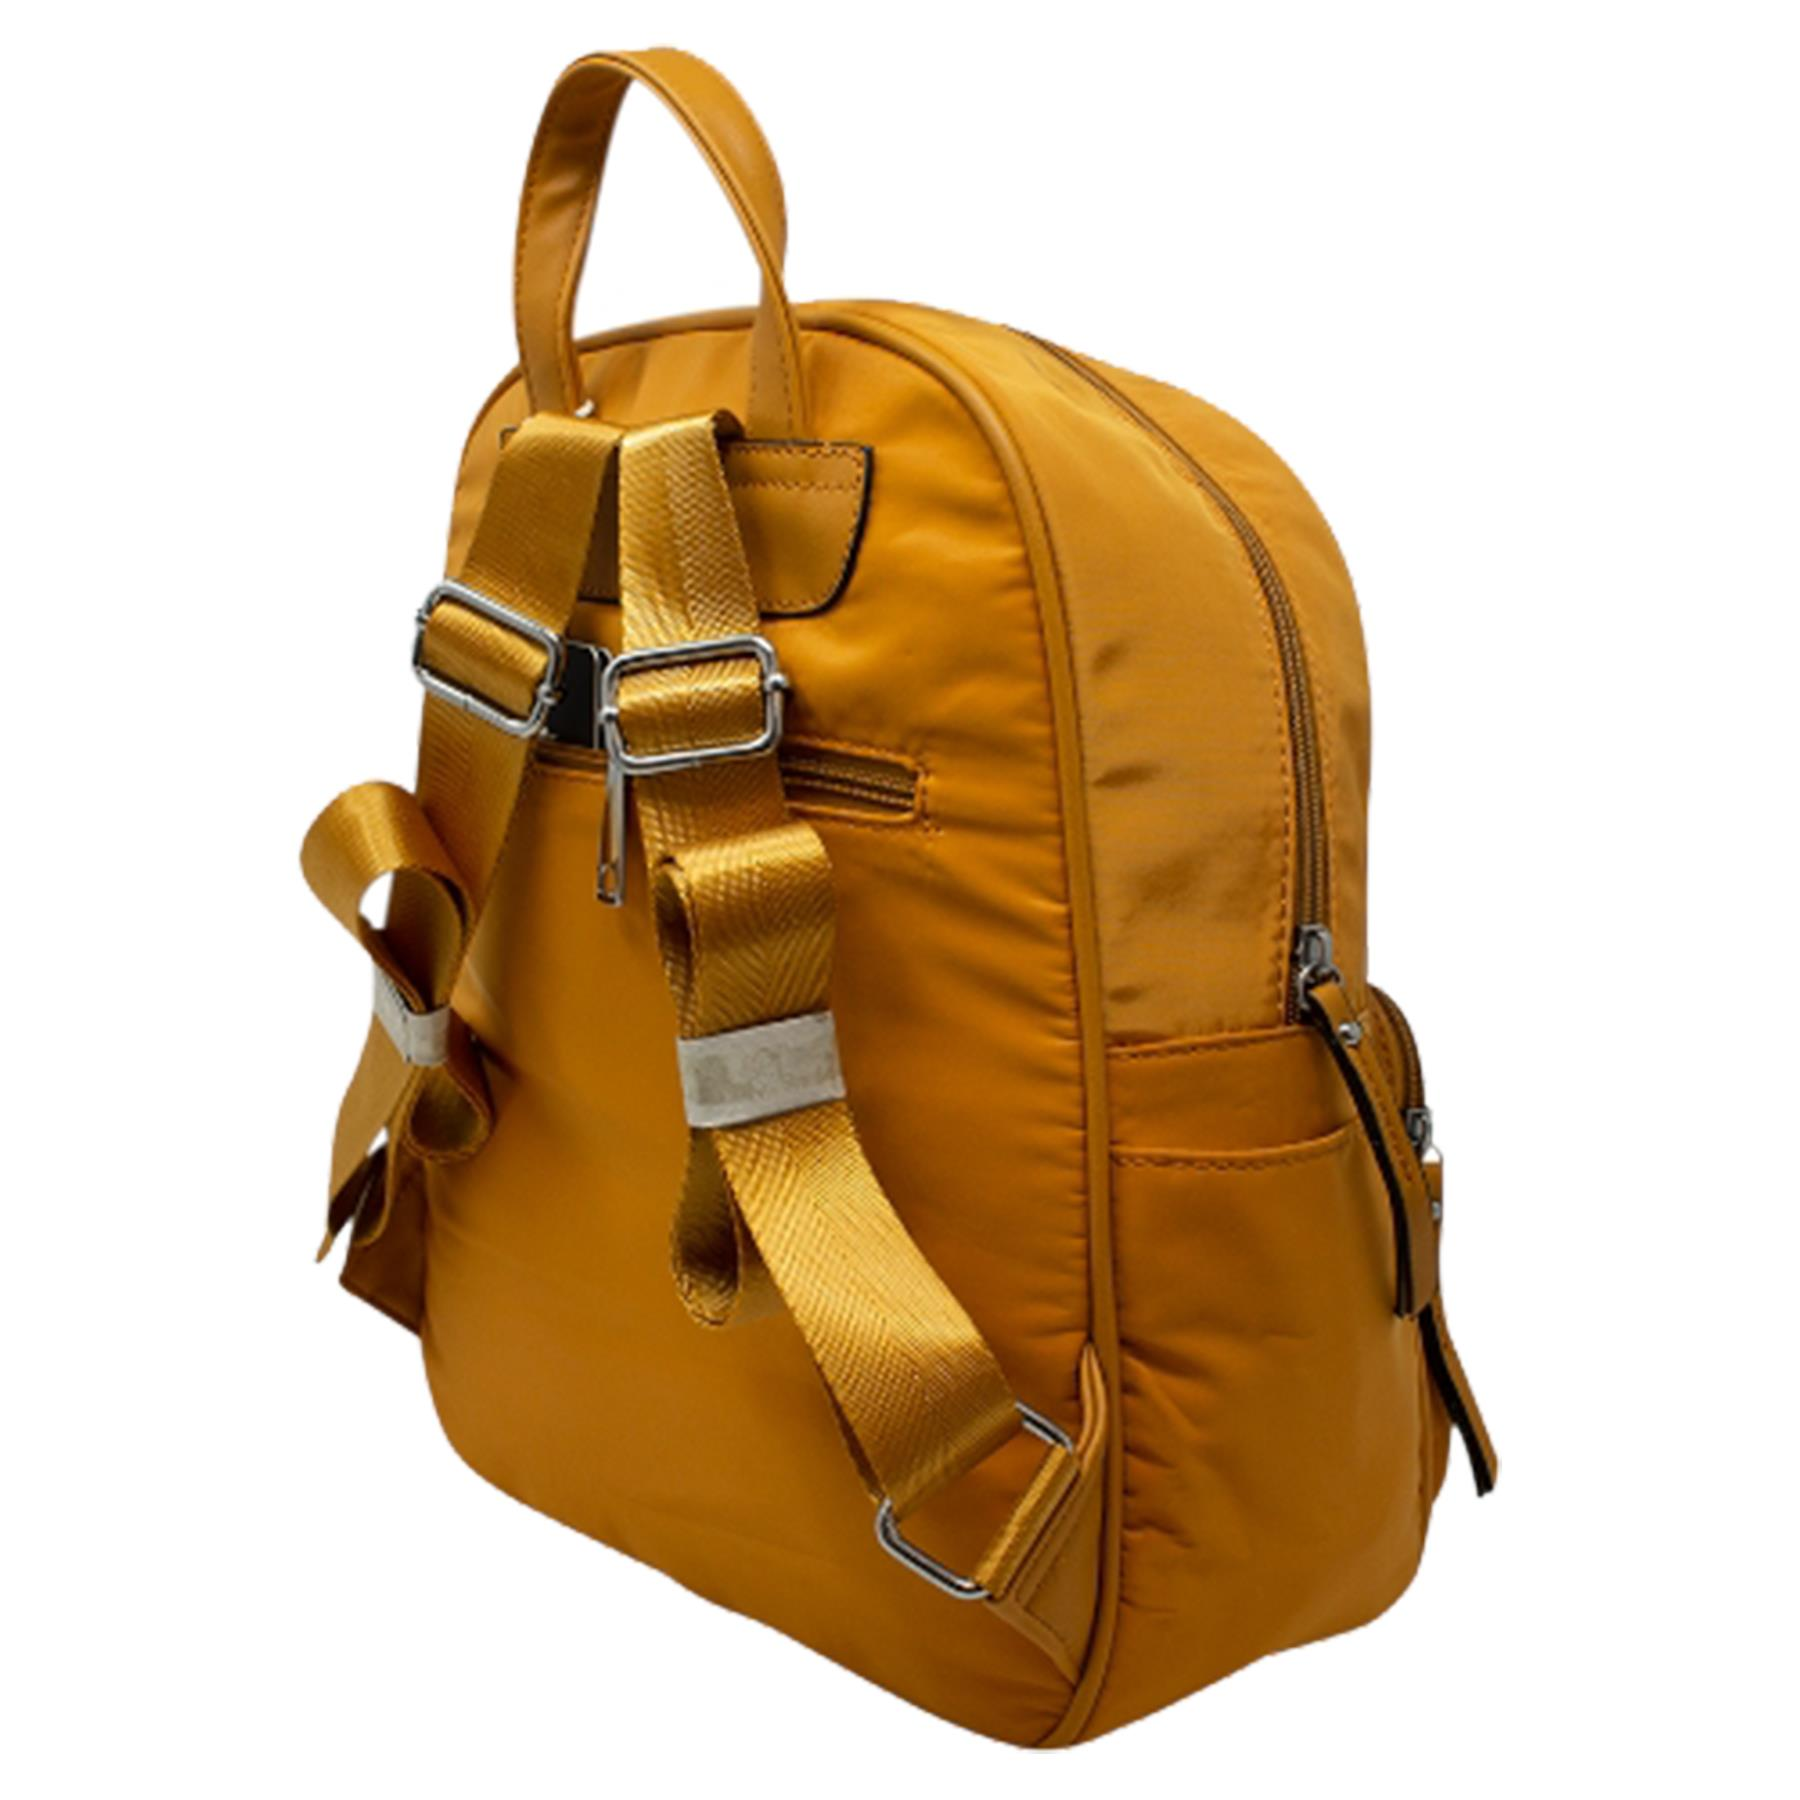 New-Unisex-Plain-Nylon-Showerproof-School-College-Backpack-Rucksack thumbnail 34